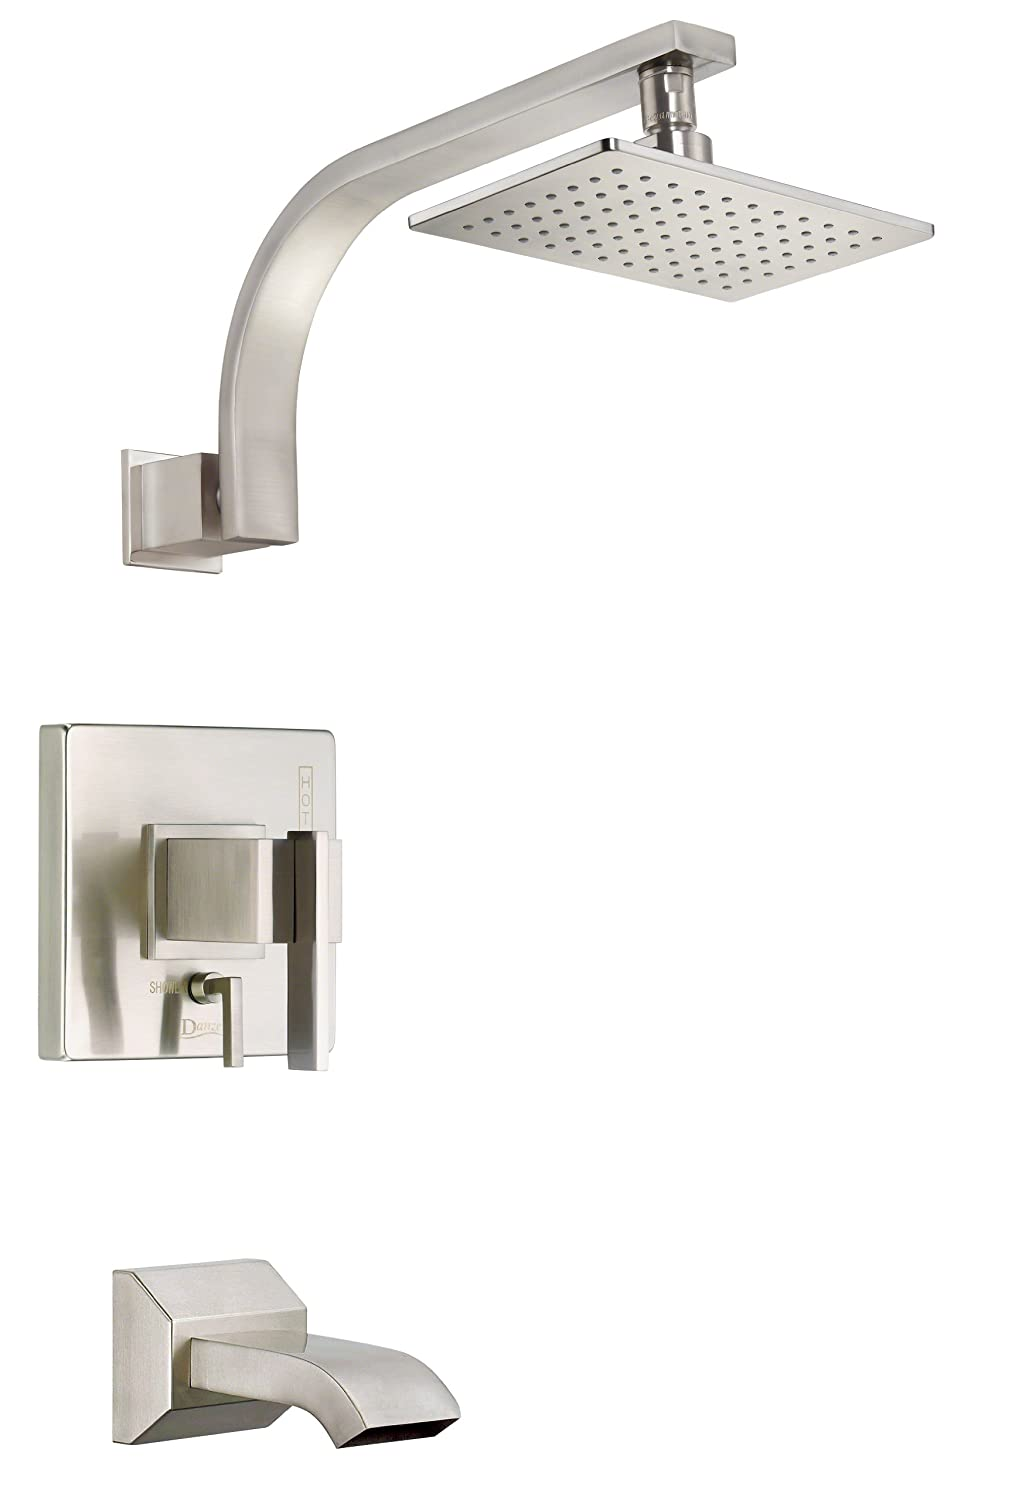 Danze D510044BNT Sirius Single Handle Tub And Shower Trim Kit, 2.5 GPM,  Valve Not Included, Brushed Nickel   Fixed Showerheads   Amazon.com